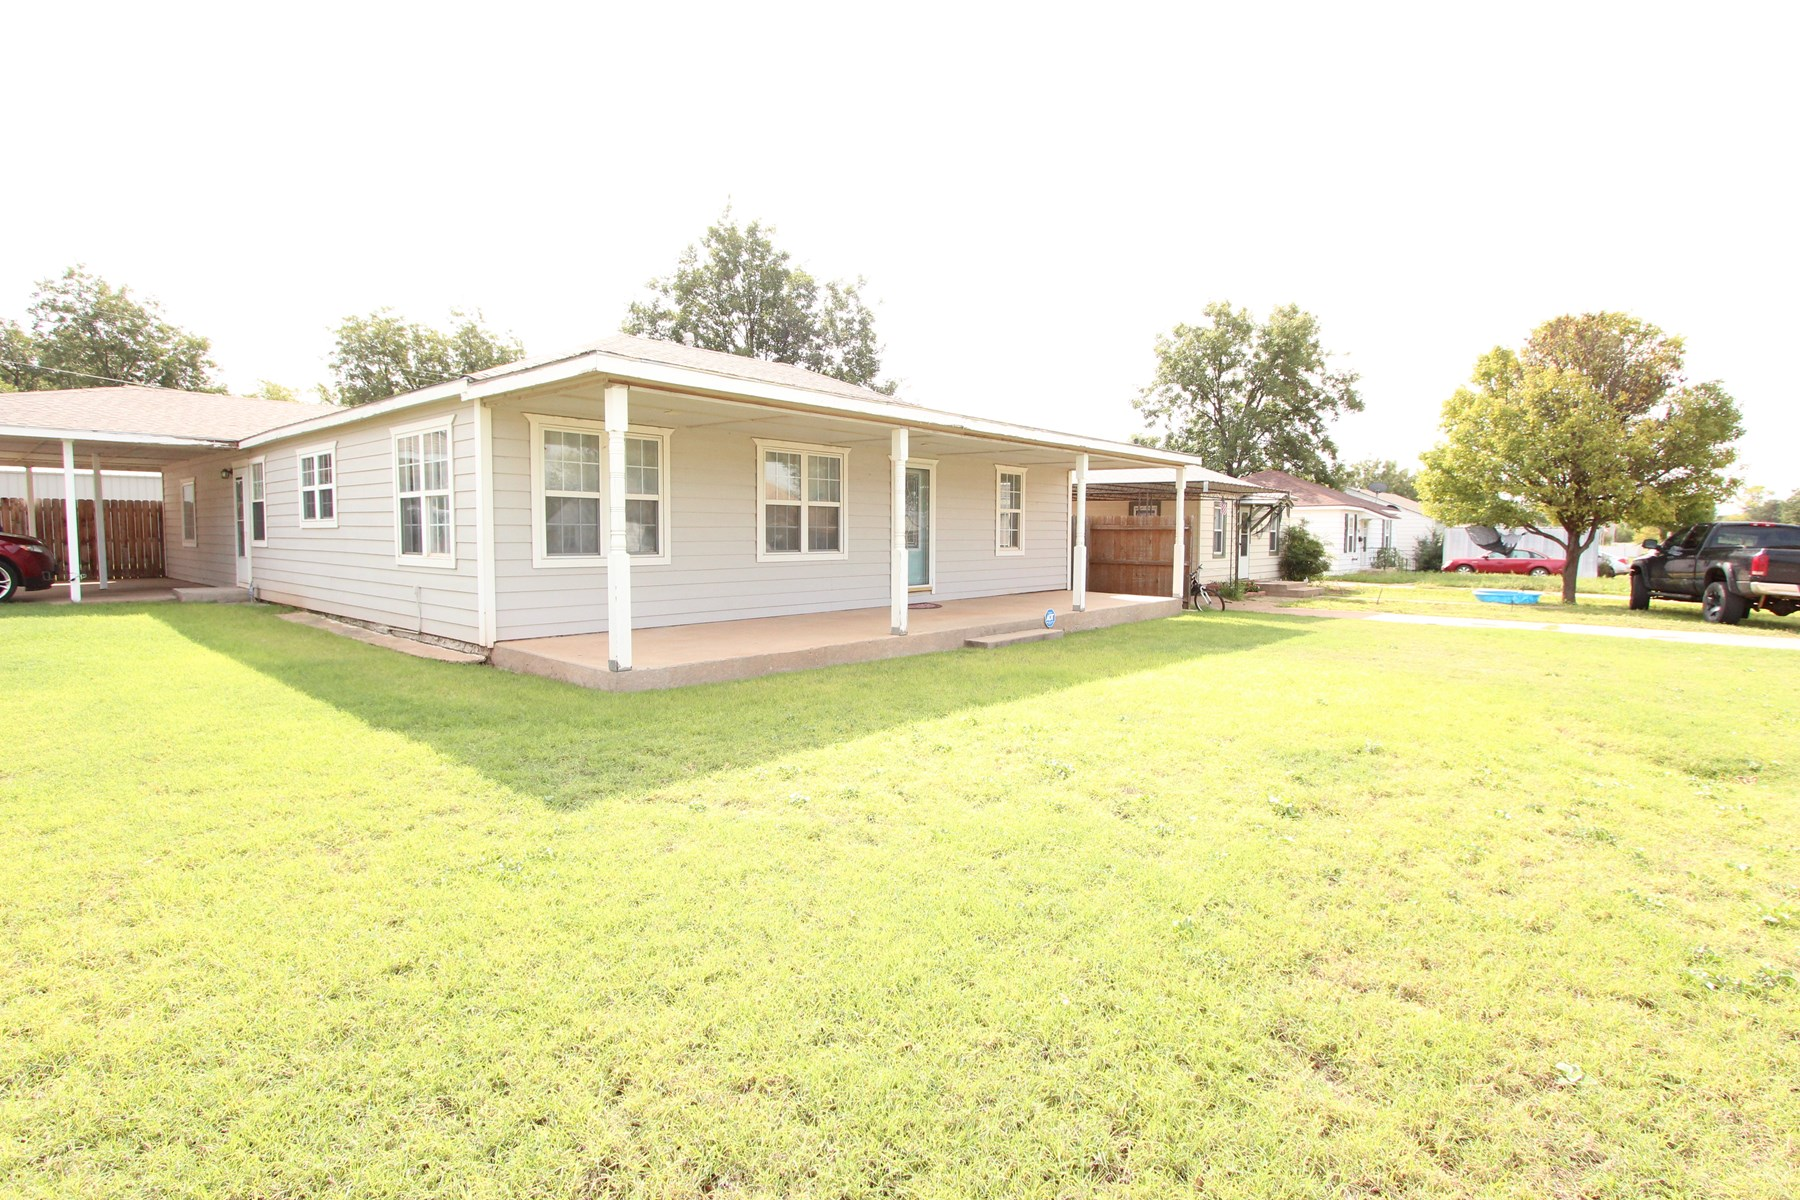 FOR SALE FABULOUSLY REMODELED HOME IN WESTERN OKLAHOMA